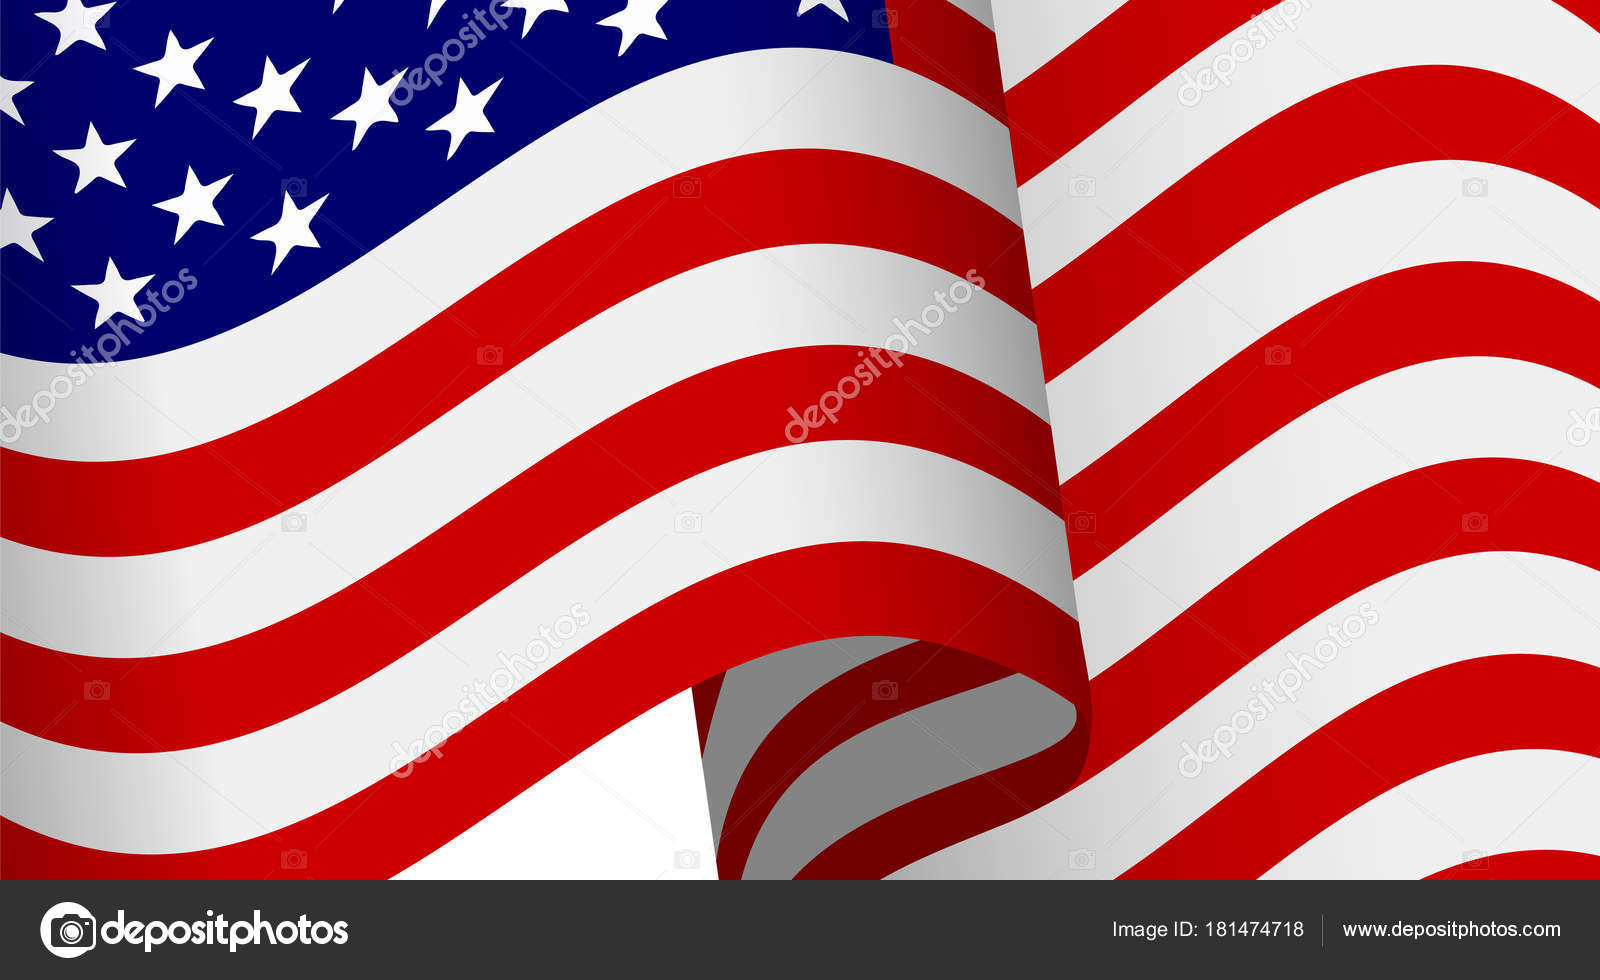 bc1ab66a321f Waving 3d American flag with clipping mask for design. Realistic vector  illustration. Patriotic holidays